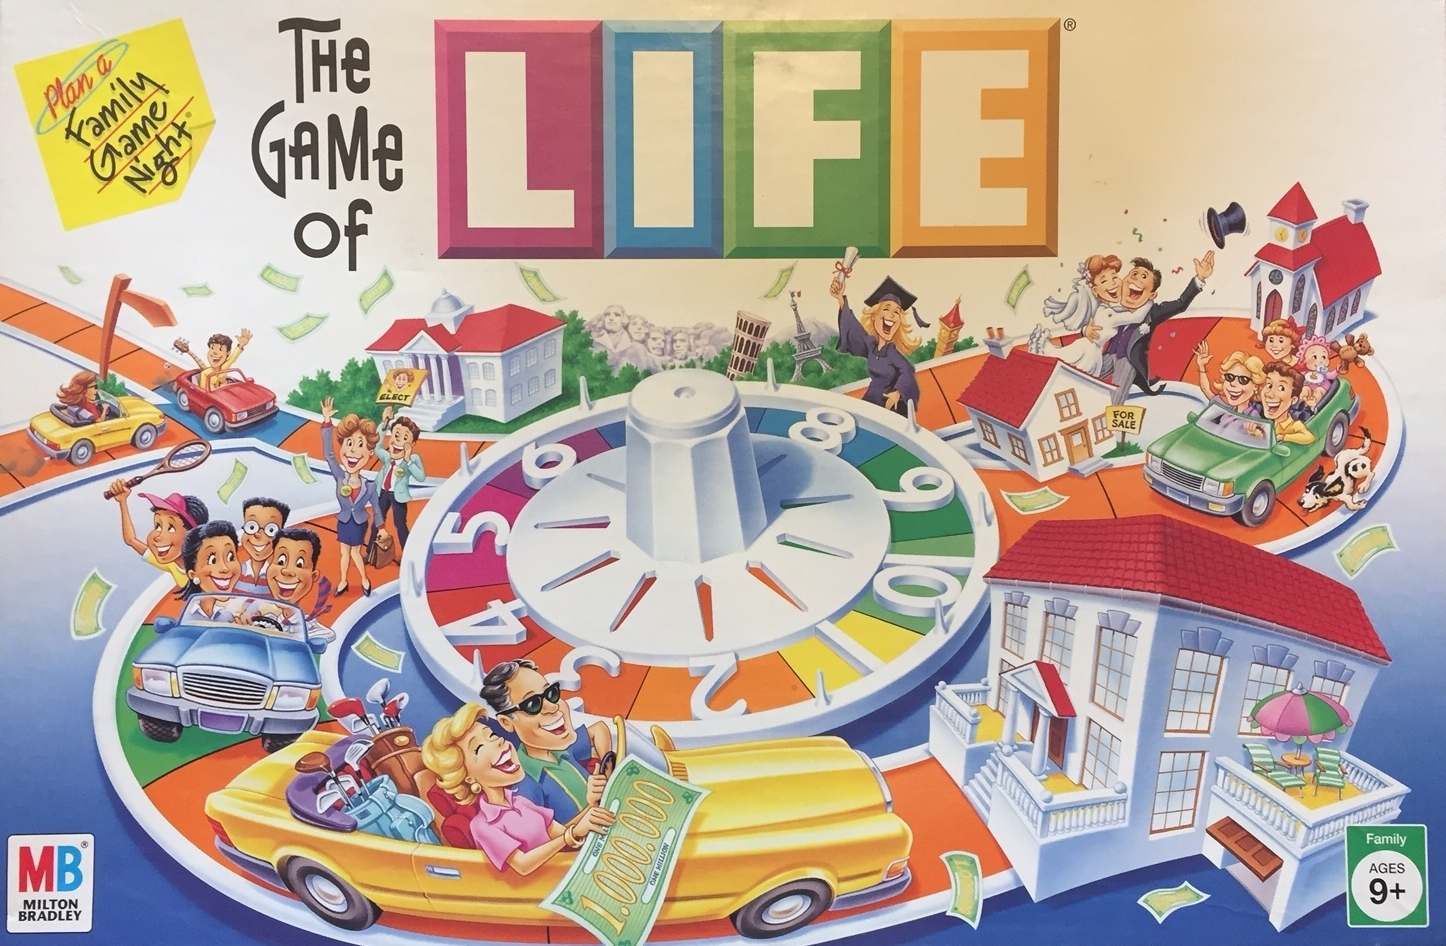 The Game of Life: Making people hate board games since 1860.